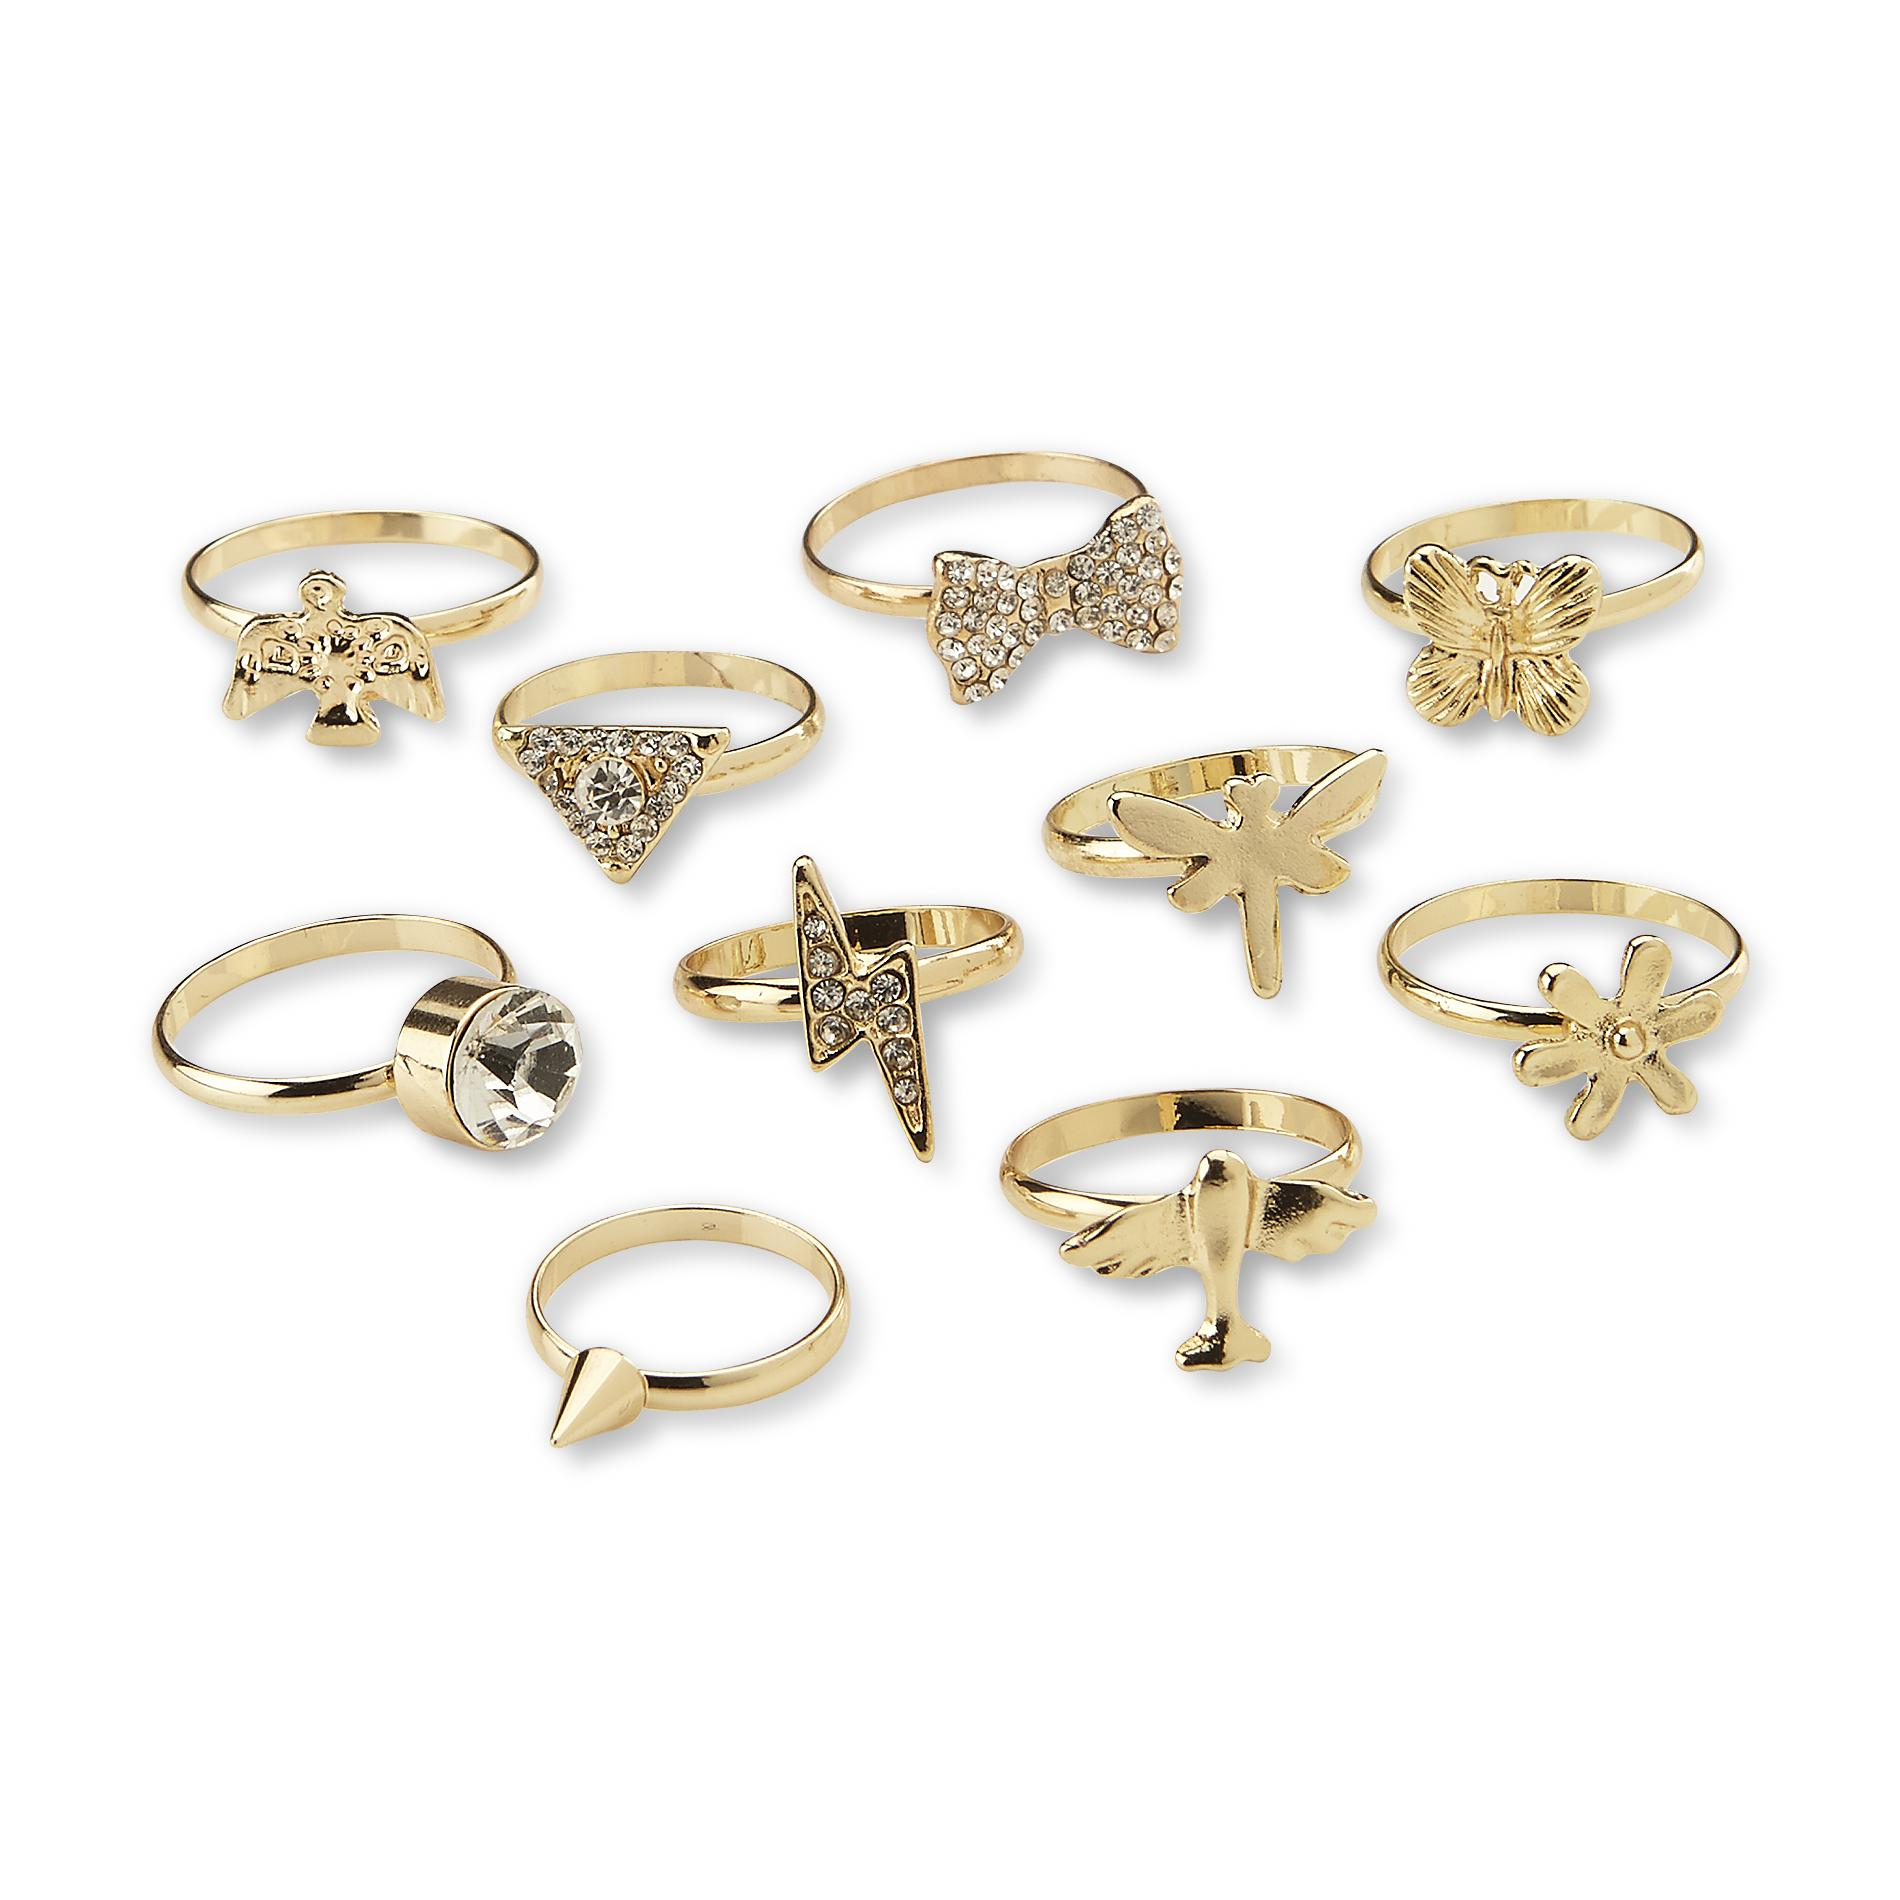 Joe Boxer Women's 10-Pack Goldtone Rings